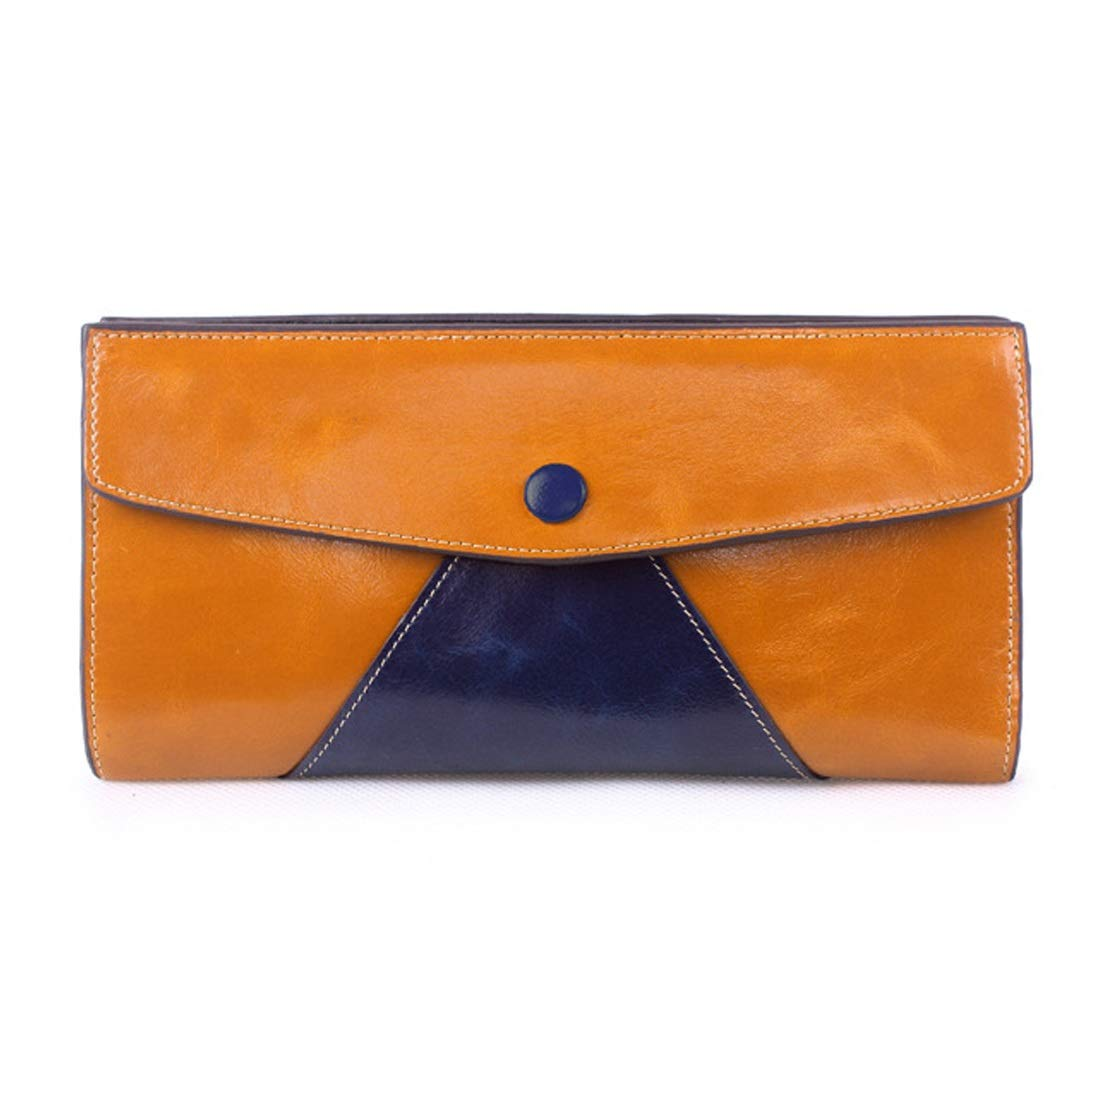 Professional Bag Long Wallet Popular Items Ladies Folded Wallet Purse Popular Leather Made of Unisex. Outdoor Travel Essentials (color   1)